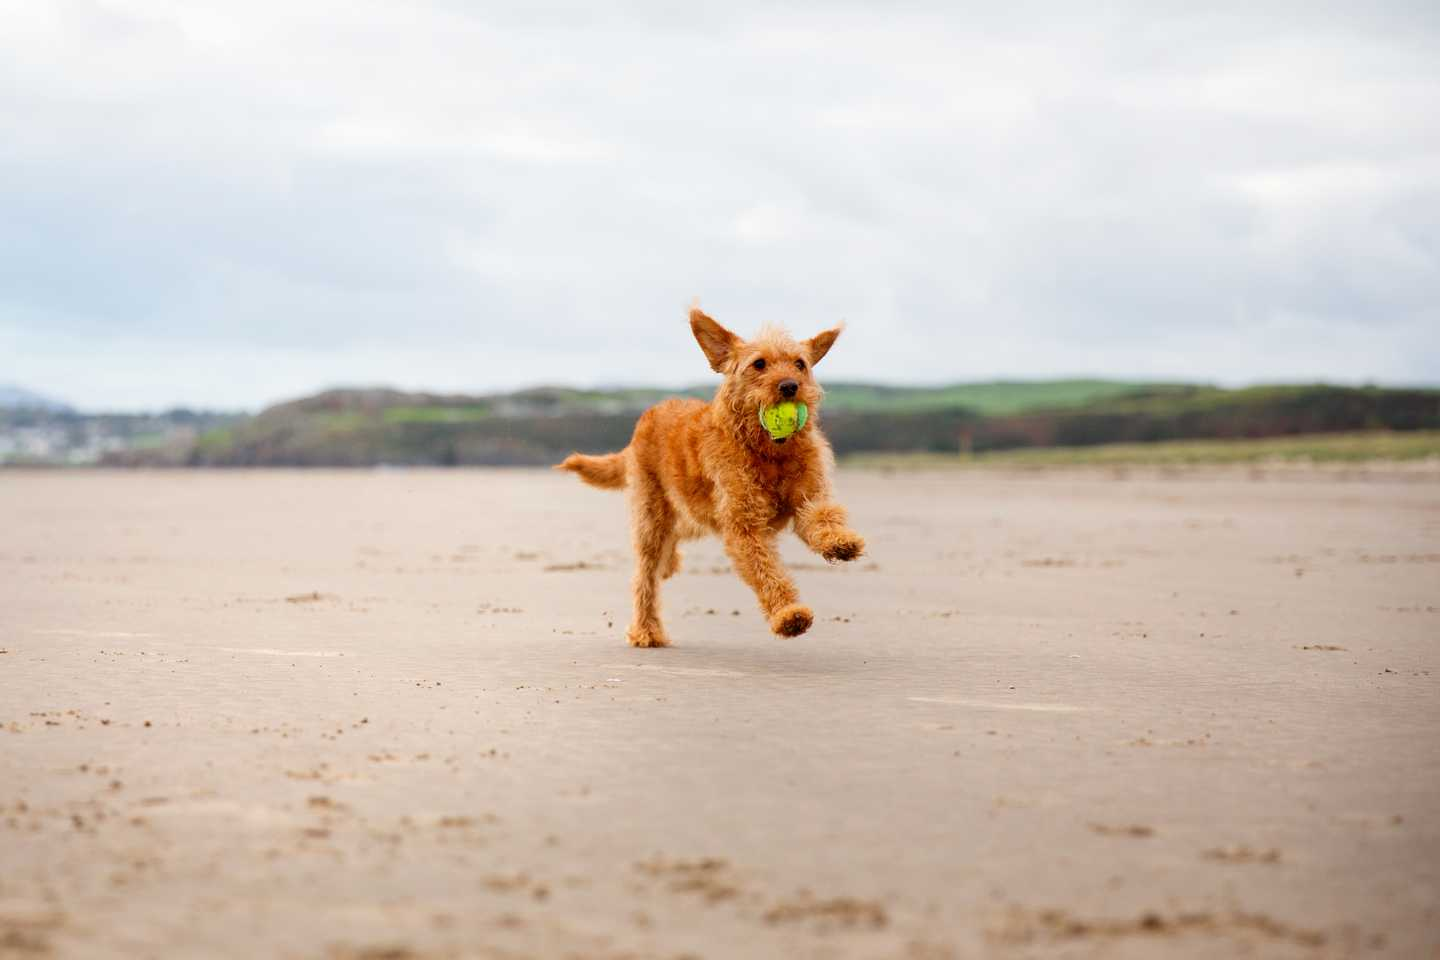 A dog running on the beach